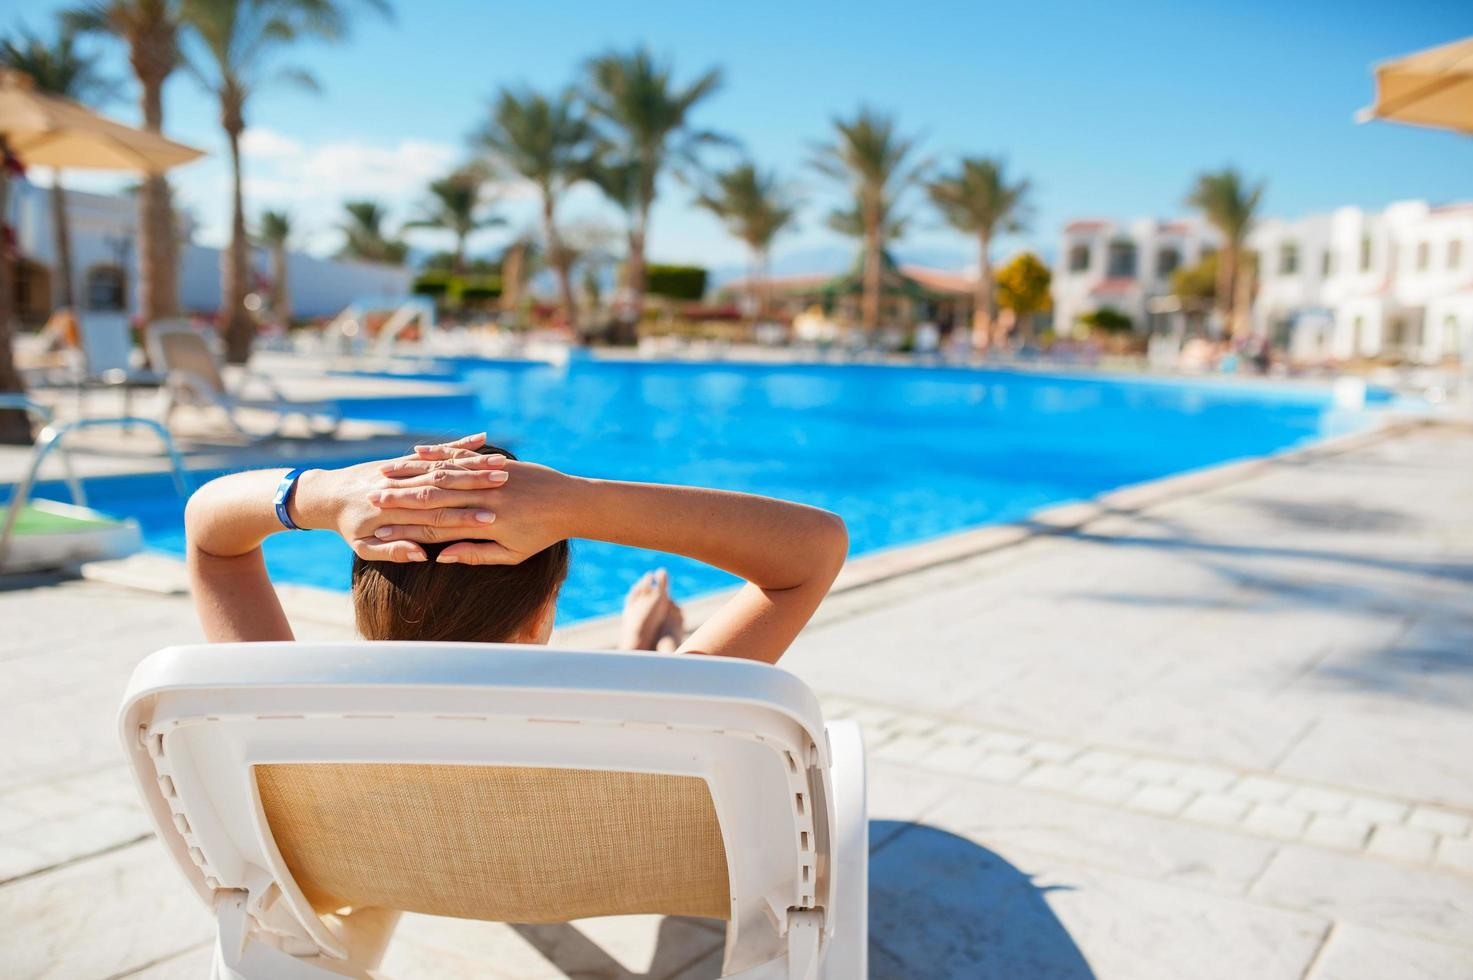 Woman laying on a poolside lounger photo